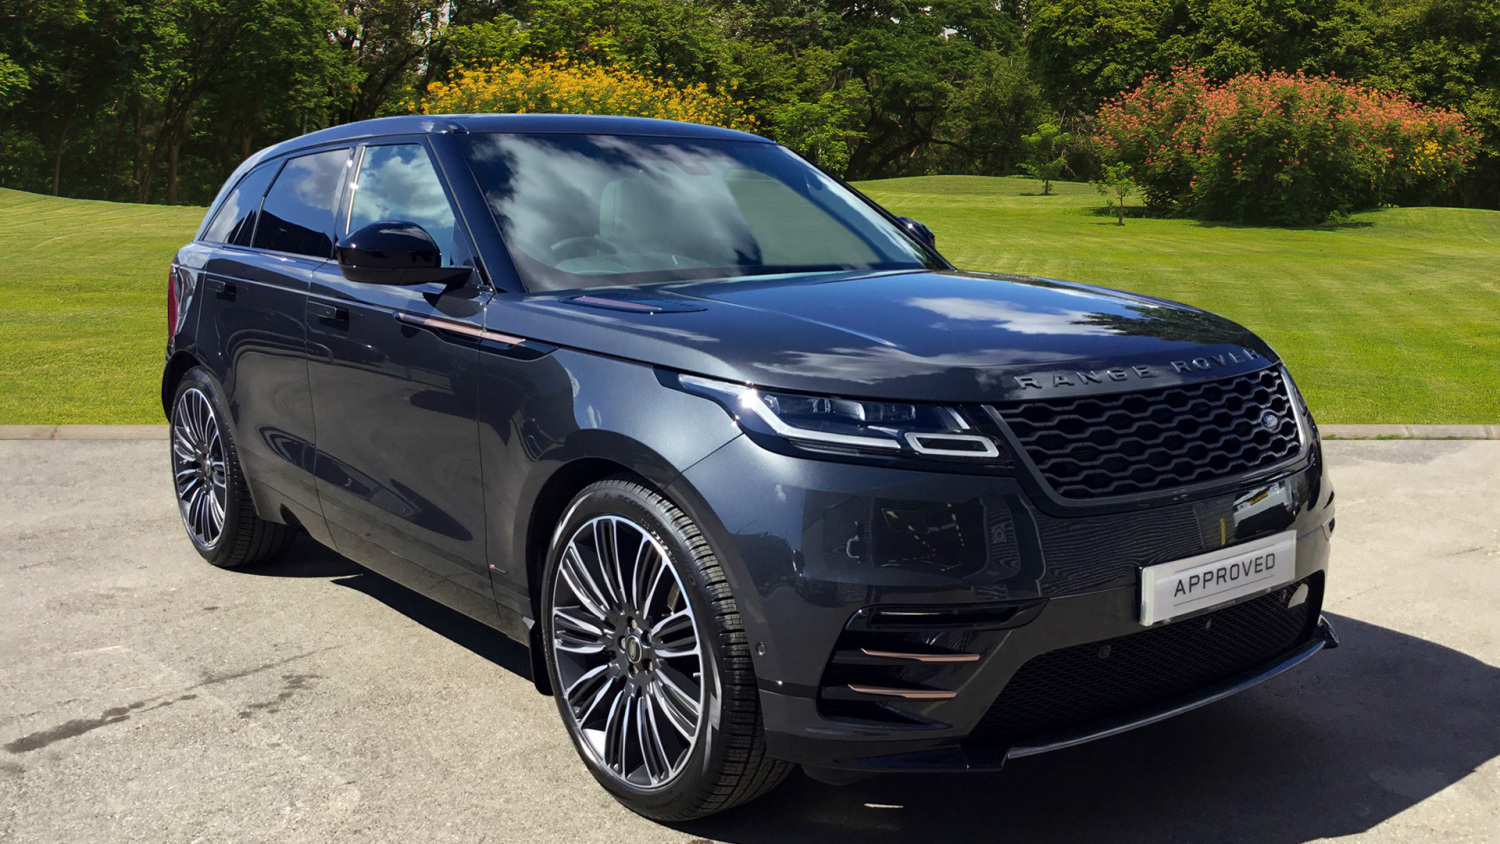 used land rover range rover velar 3 0 p380 r dynamic hse 5dr auto petrol estate for sale. Black Bedroom Furniture Sets. Home Design Ideas